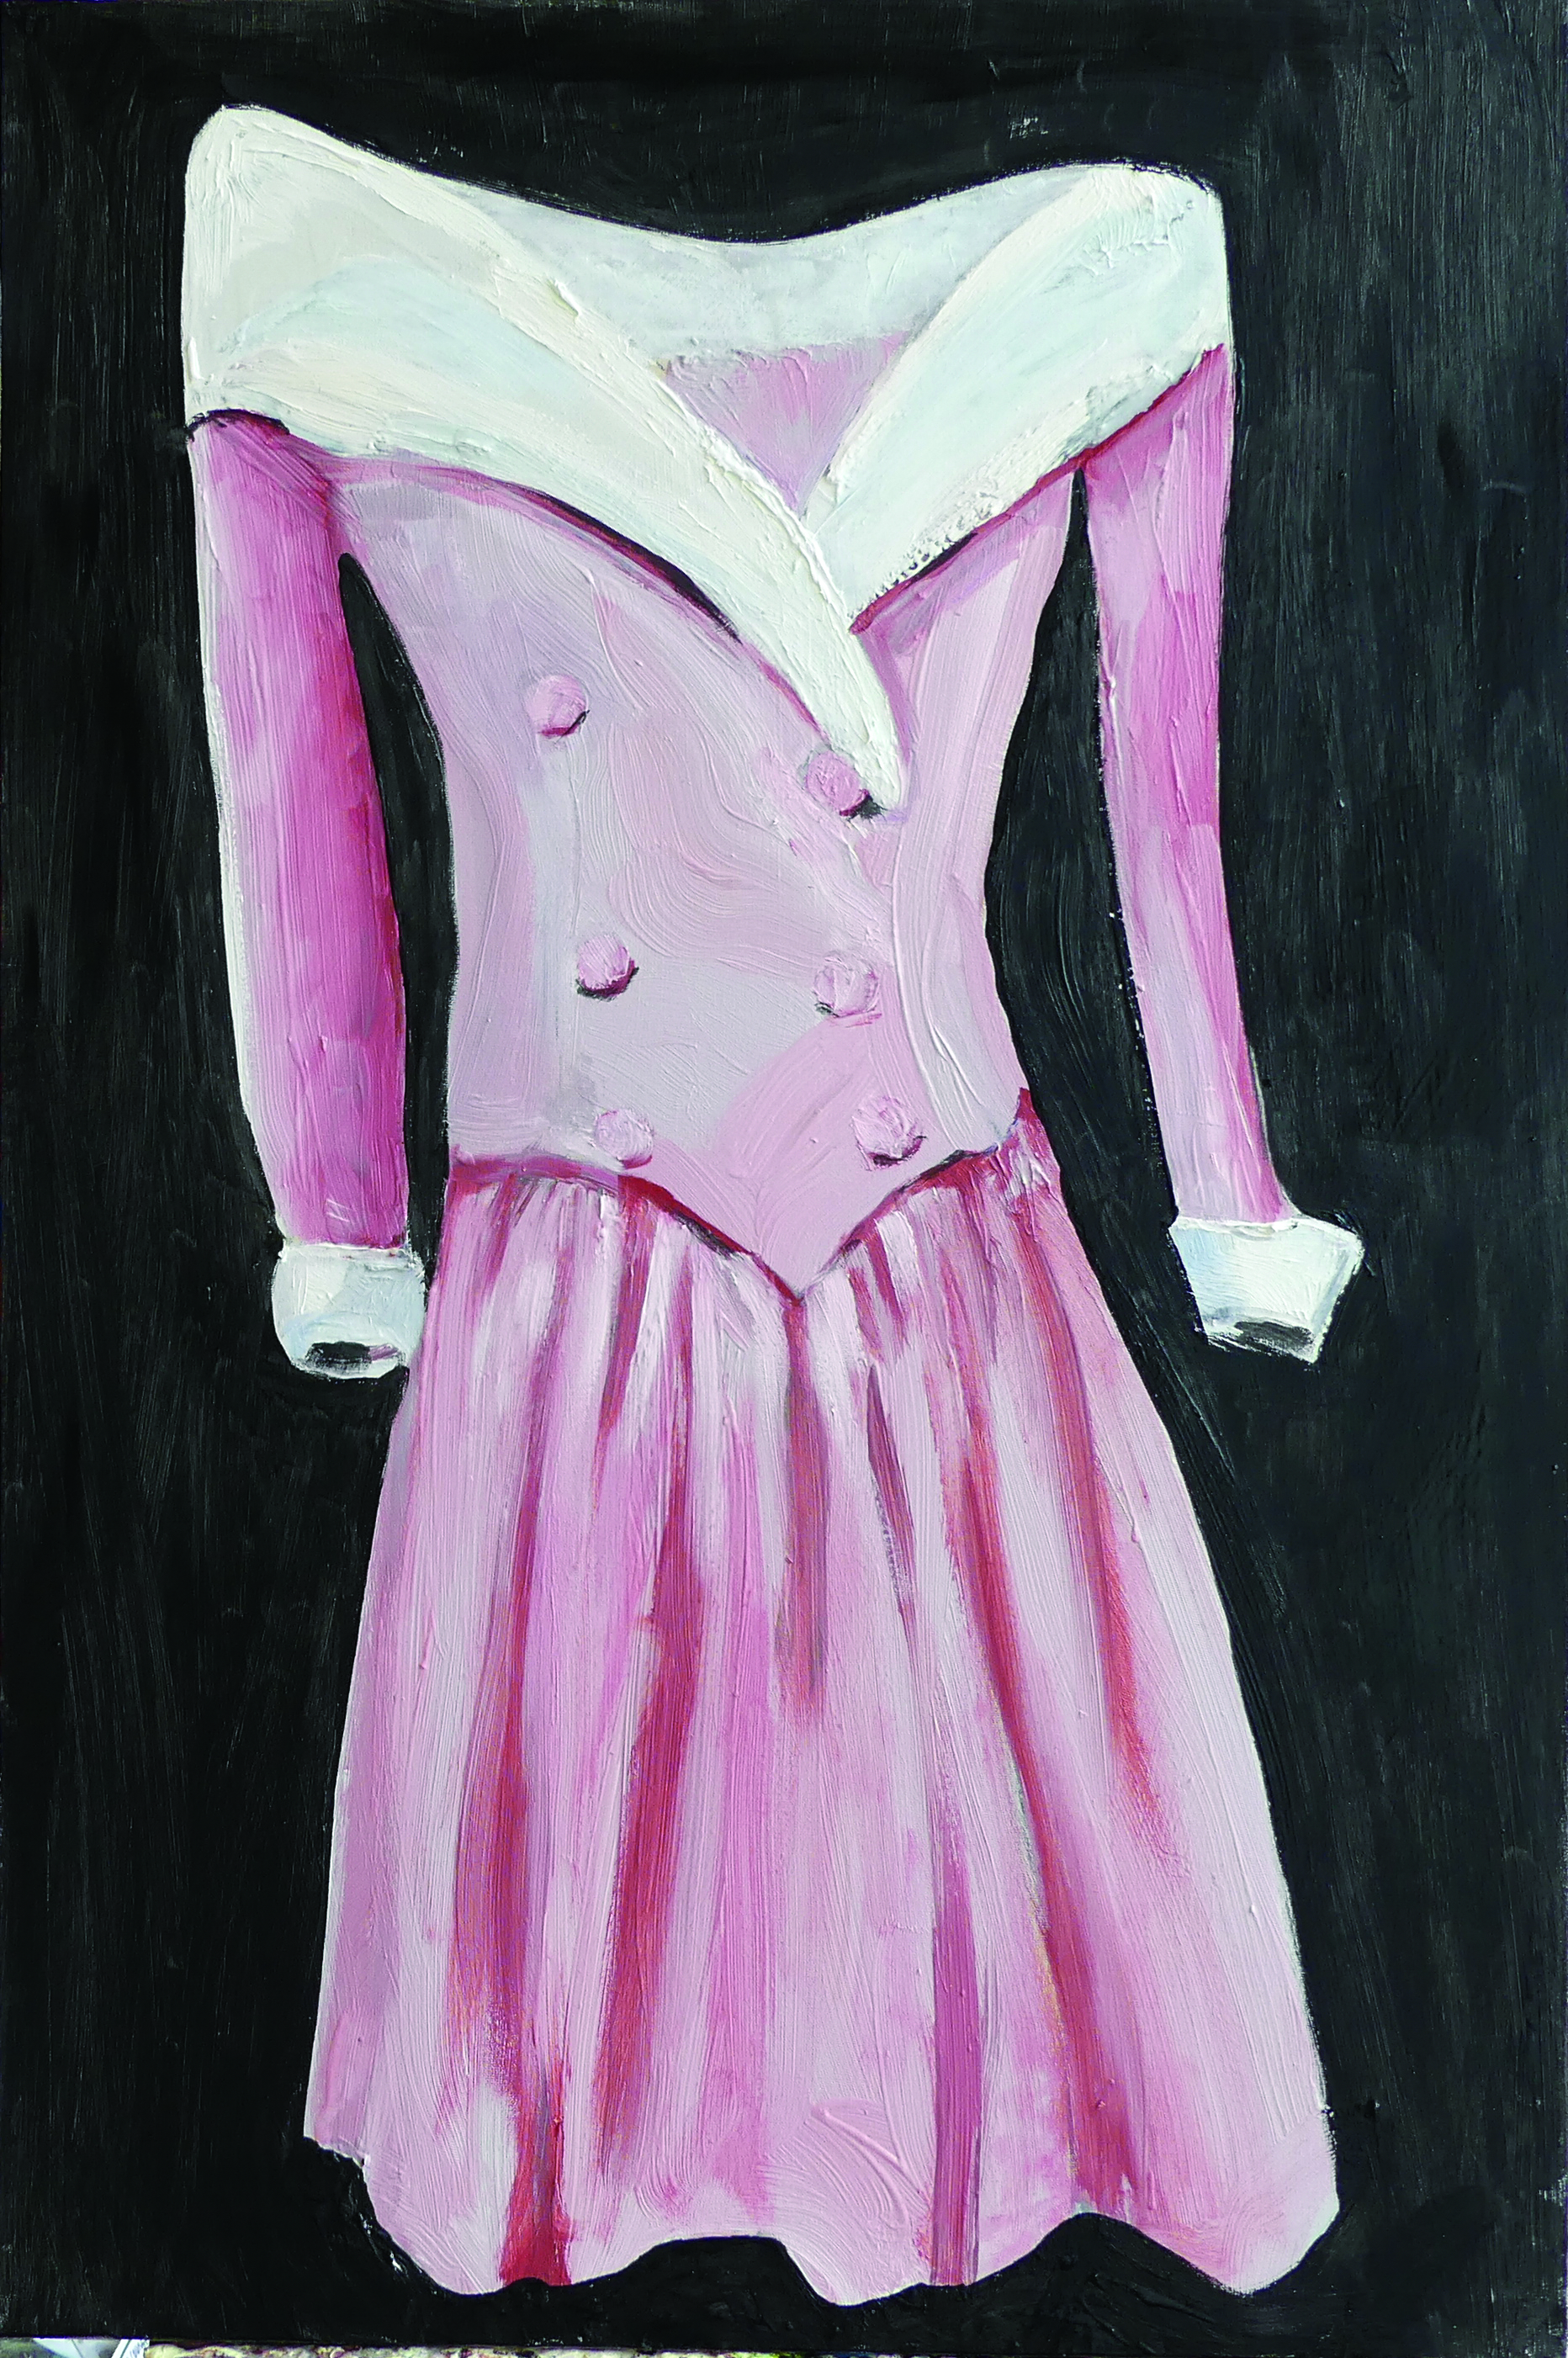 Pink satin evening gown with white raw silk collar and cuffs by Catherine Walker for Lady Diana 1987 worn: Official portrait, 1987 official visit to Germany, 1987 and Turkey, 1988; formal banquet for the president of India, 1990  2018  Acrylic, oil, oil stick, and charcoal on canvas  30 x 24 in